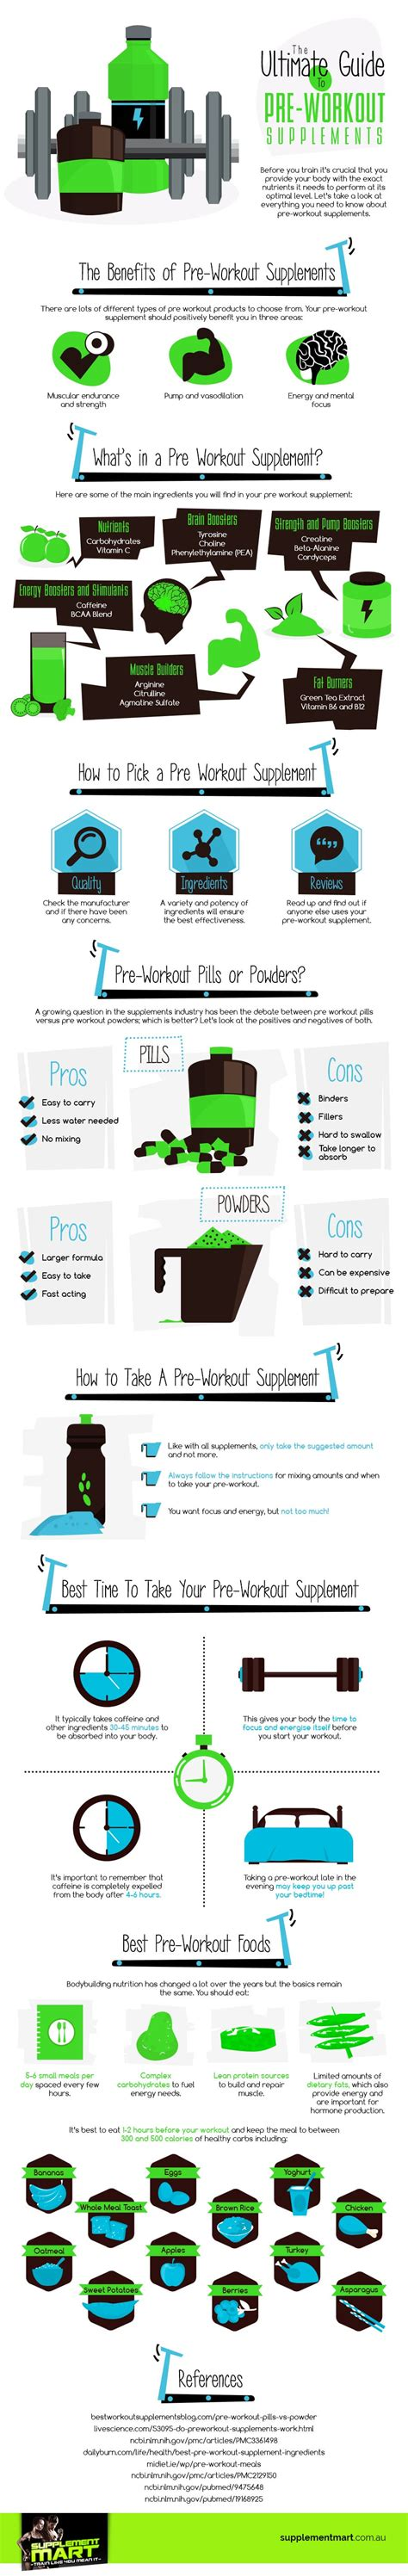 supplement infographic the ultimate guide to pre workout supplements infographic